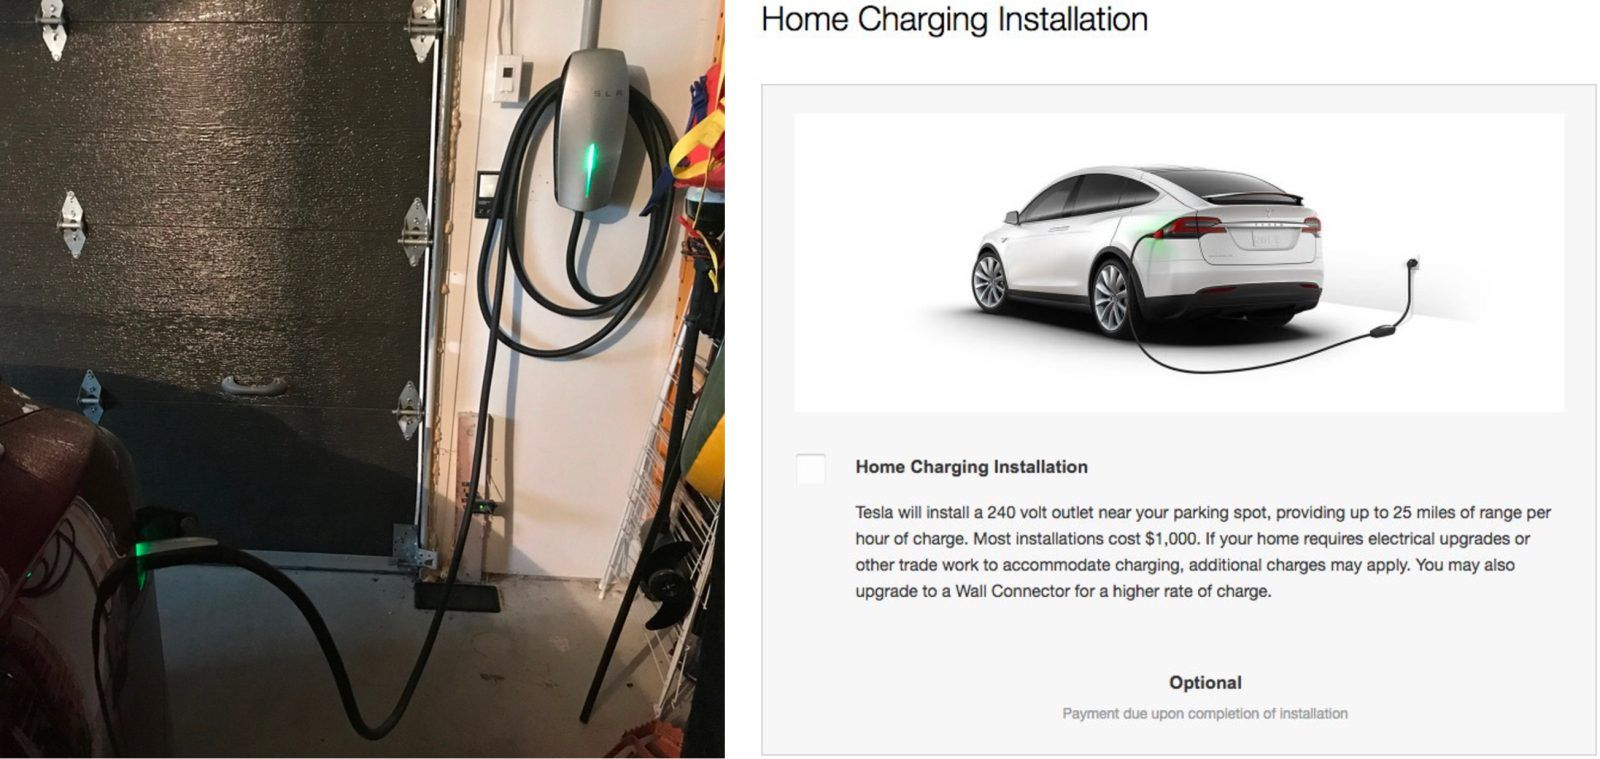 Tesla Starts Offering Home Charging Installations In Certain Markets Tesla Tesla Motors Installation